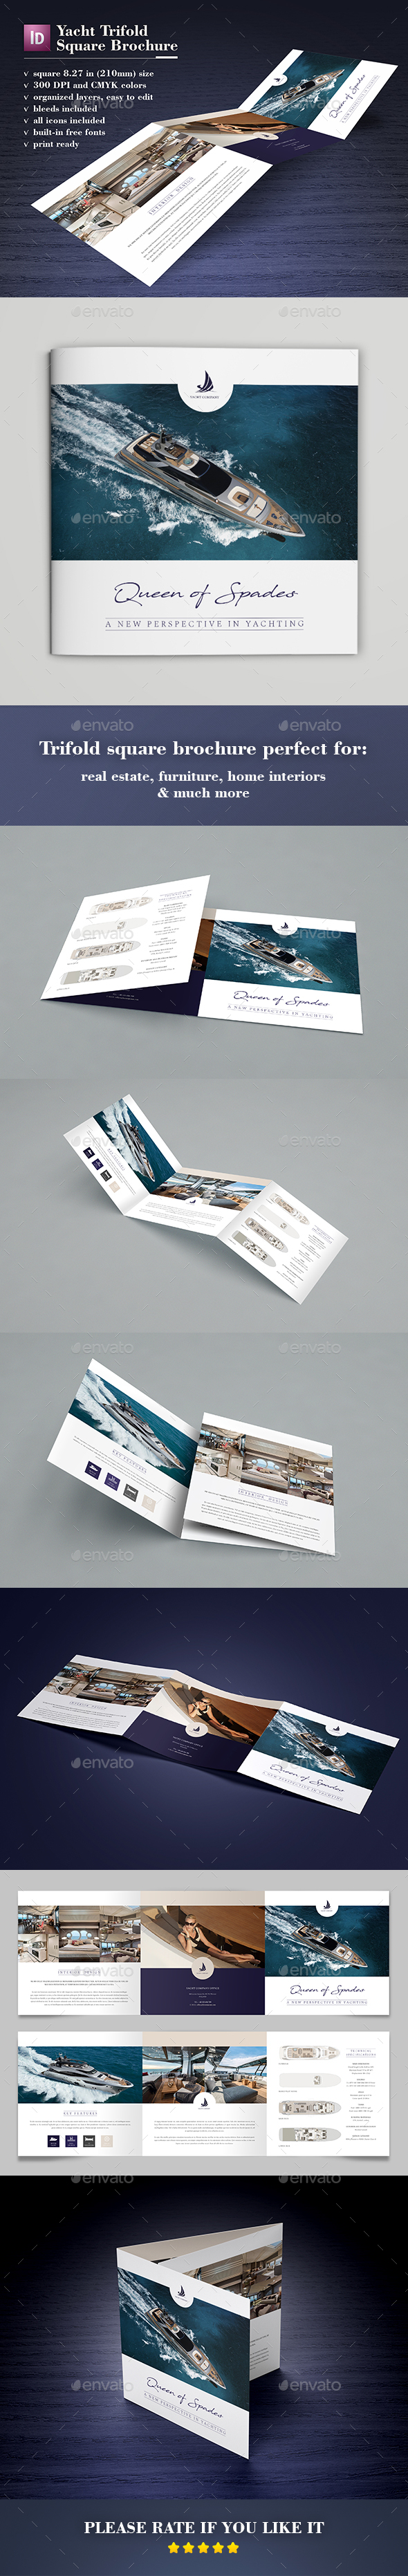 Yacht Trifold Square Brochure - Catalogs Brochures